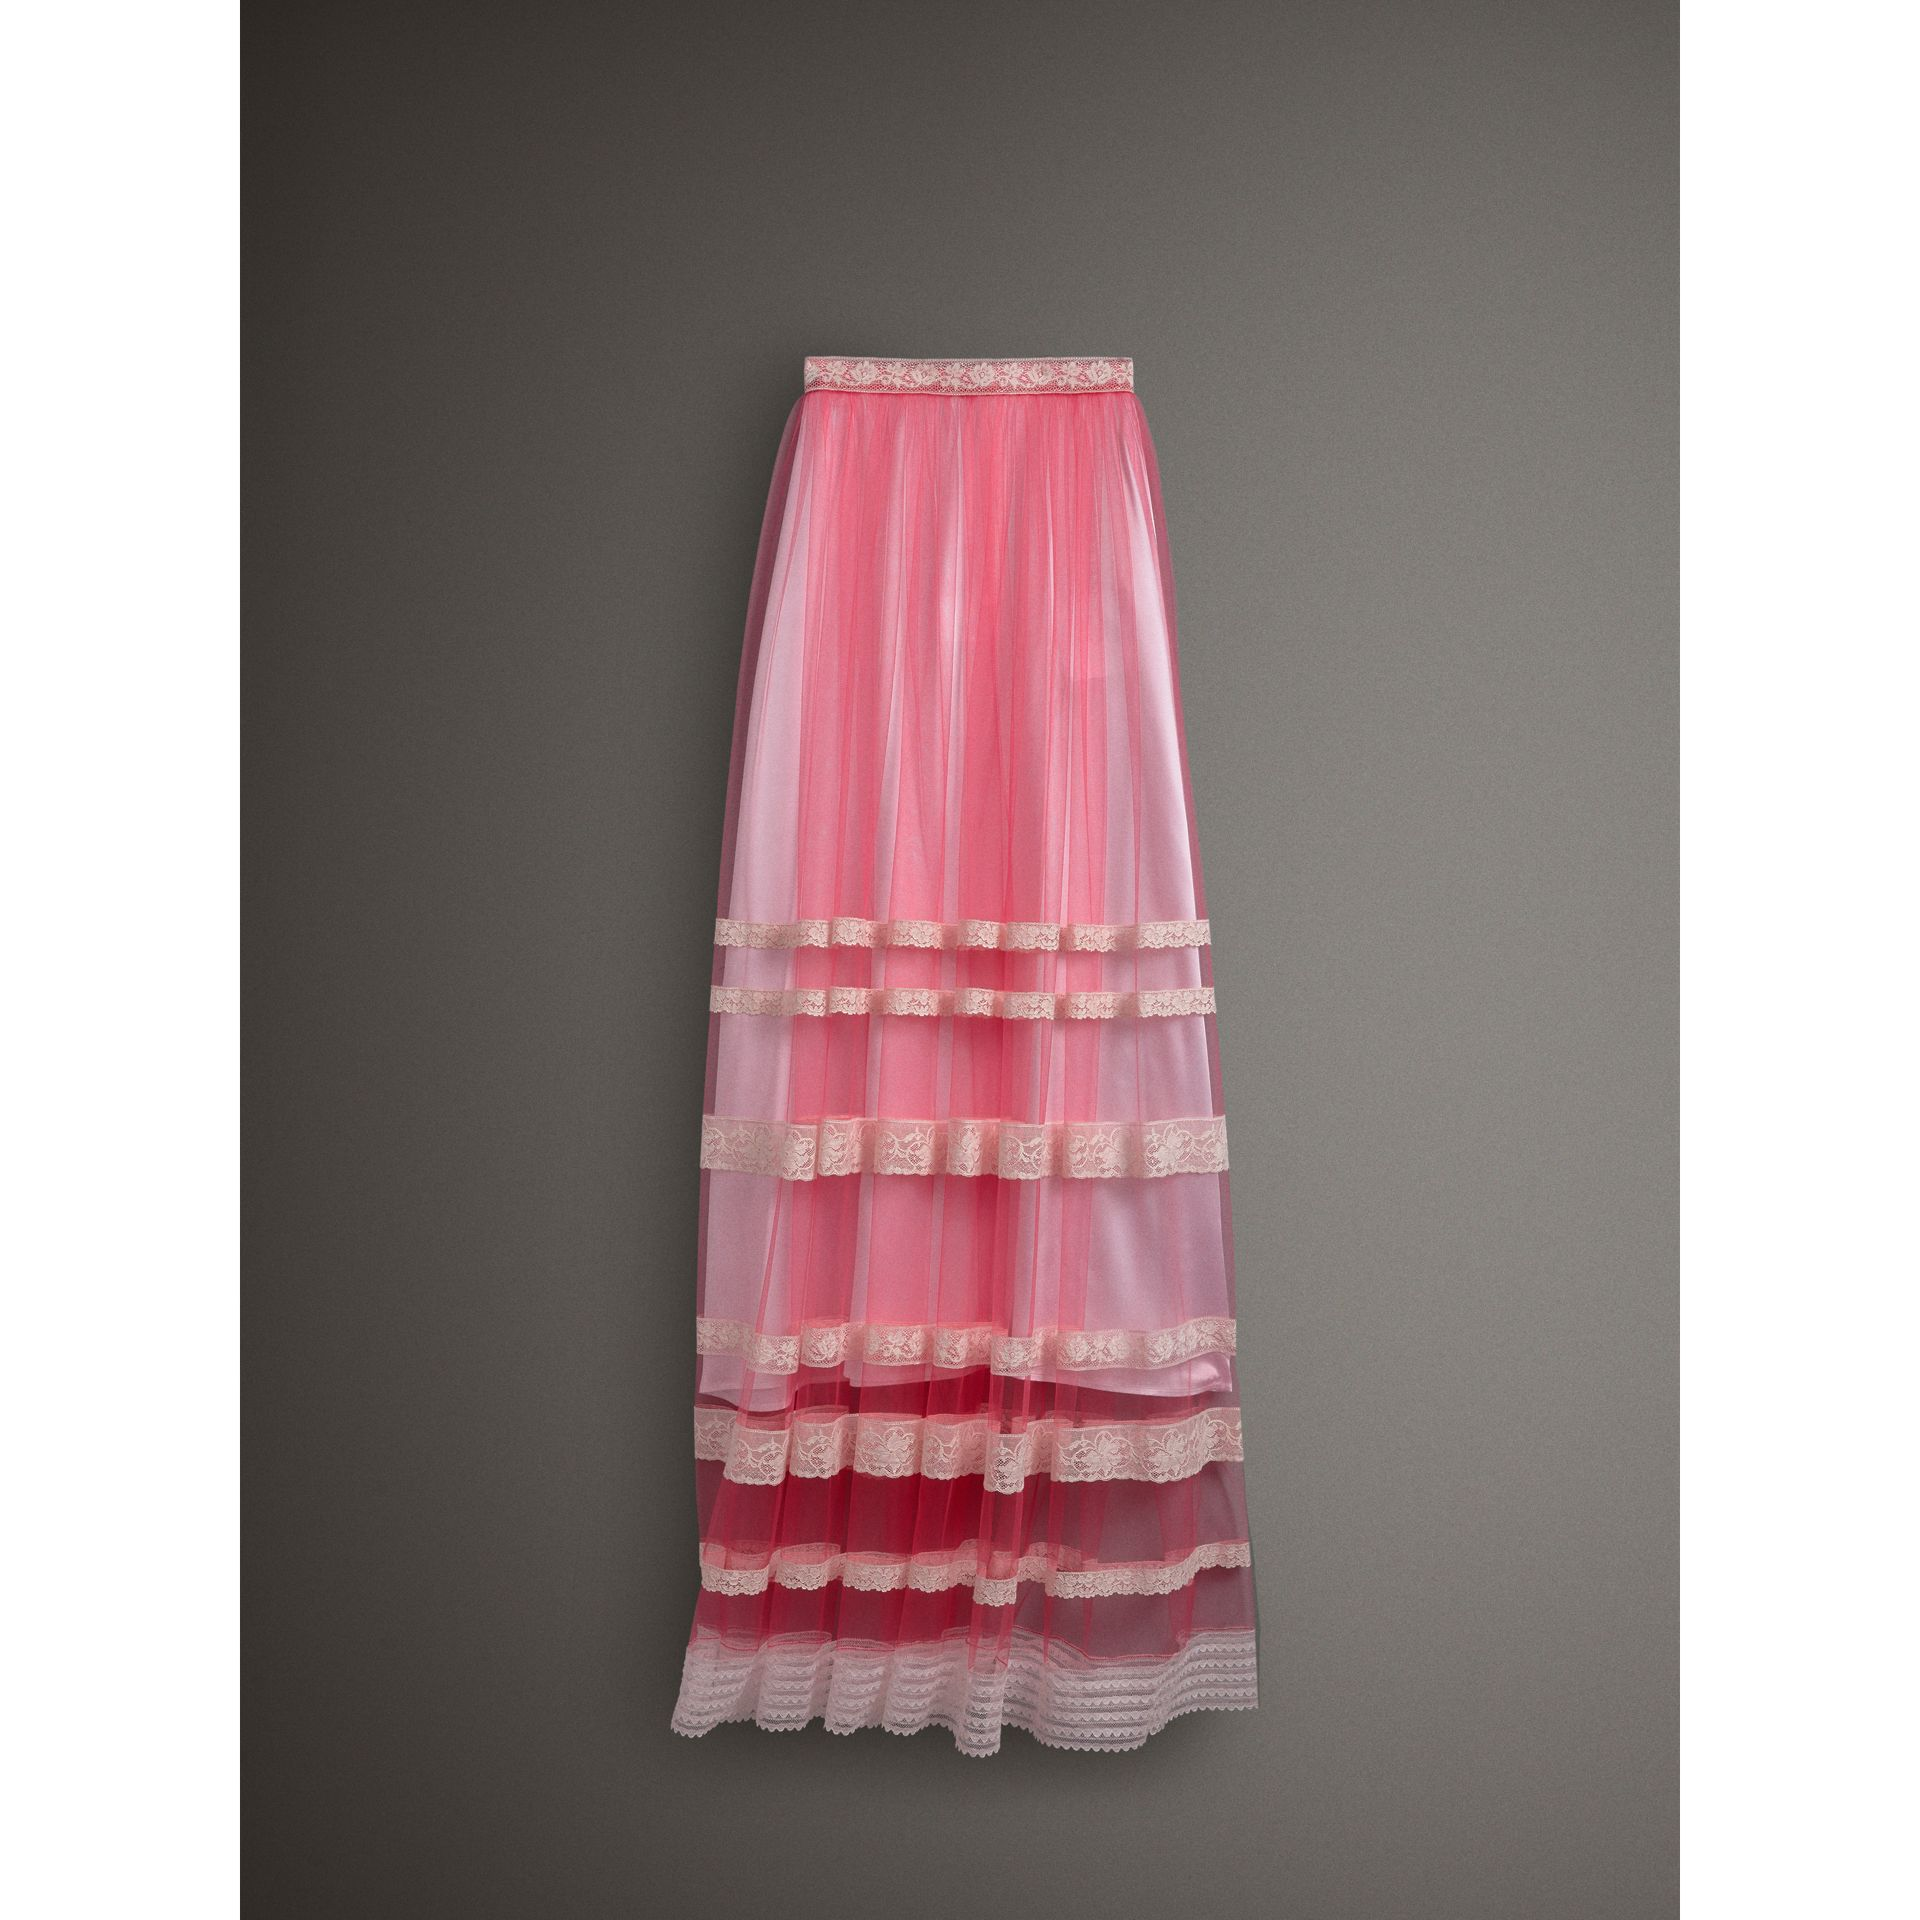 Floor-length English Lace Trim Tulle Skirt in Bright Pink - Women | Burberry Hong Kong - gallery image 3